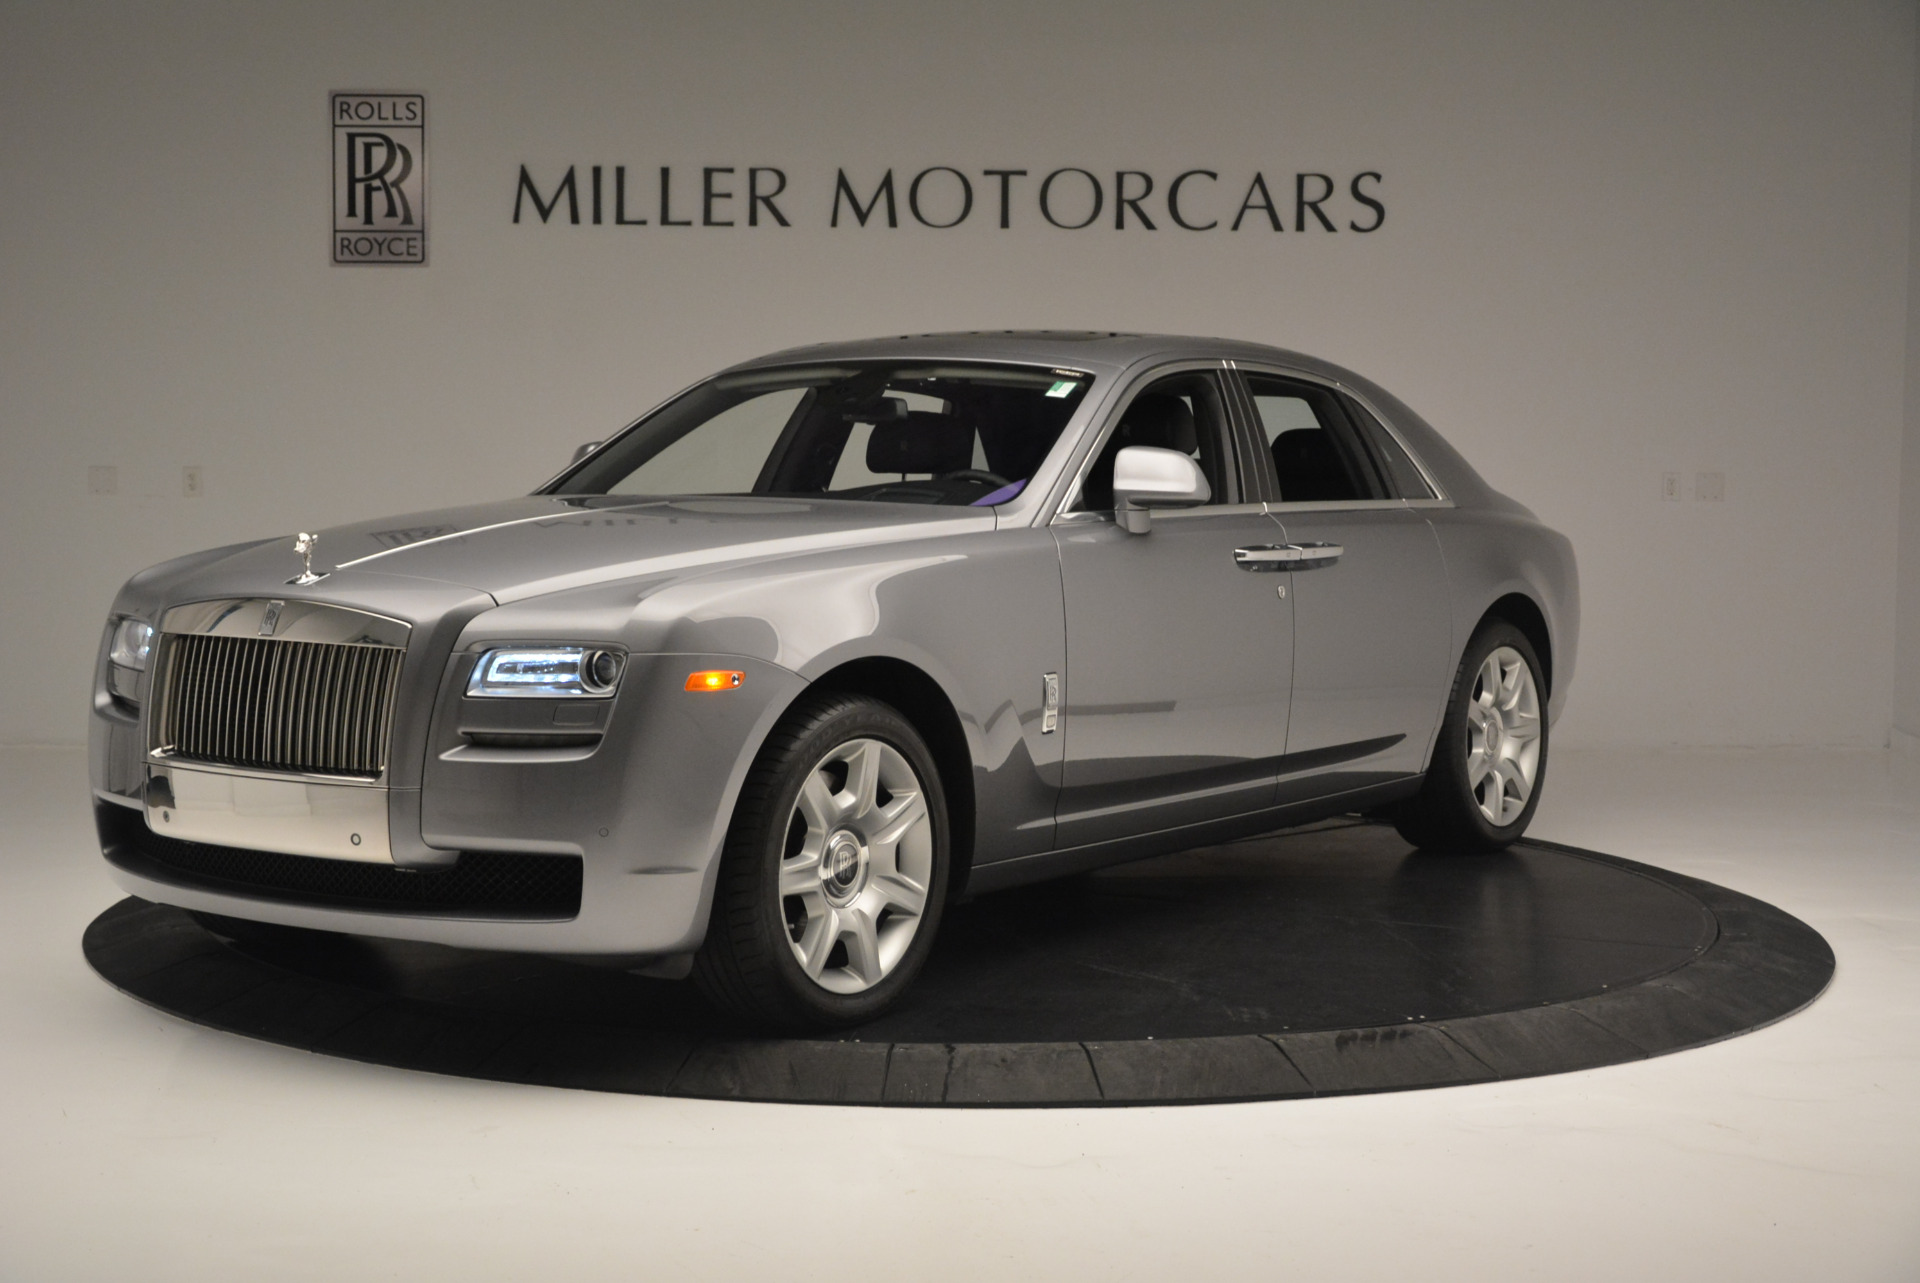 Used 2012 Rolls-Royce Ghost for sale Sold at Rolls-Royce Motor Cars Greenwich in Greenwich CT 06830 1